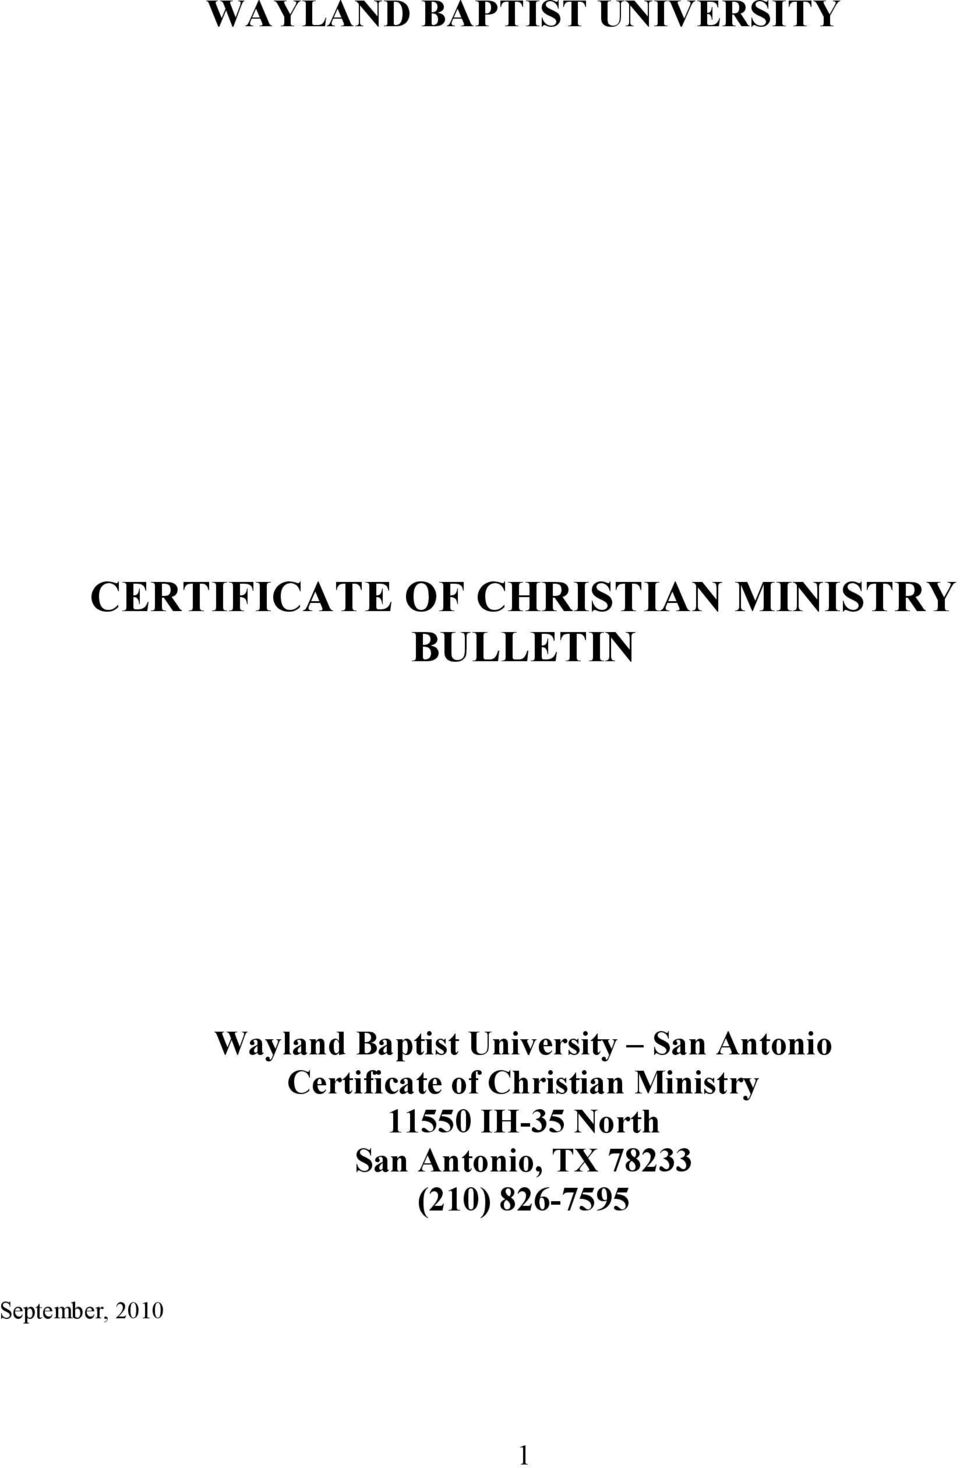 Antonio Certificate of Christian Ministry 11550 IH-35